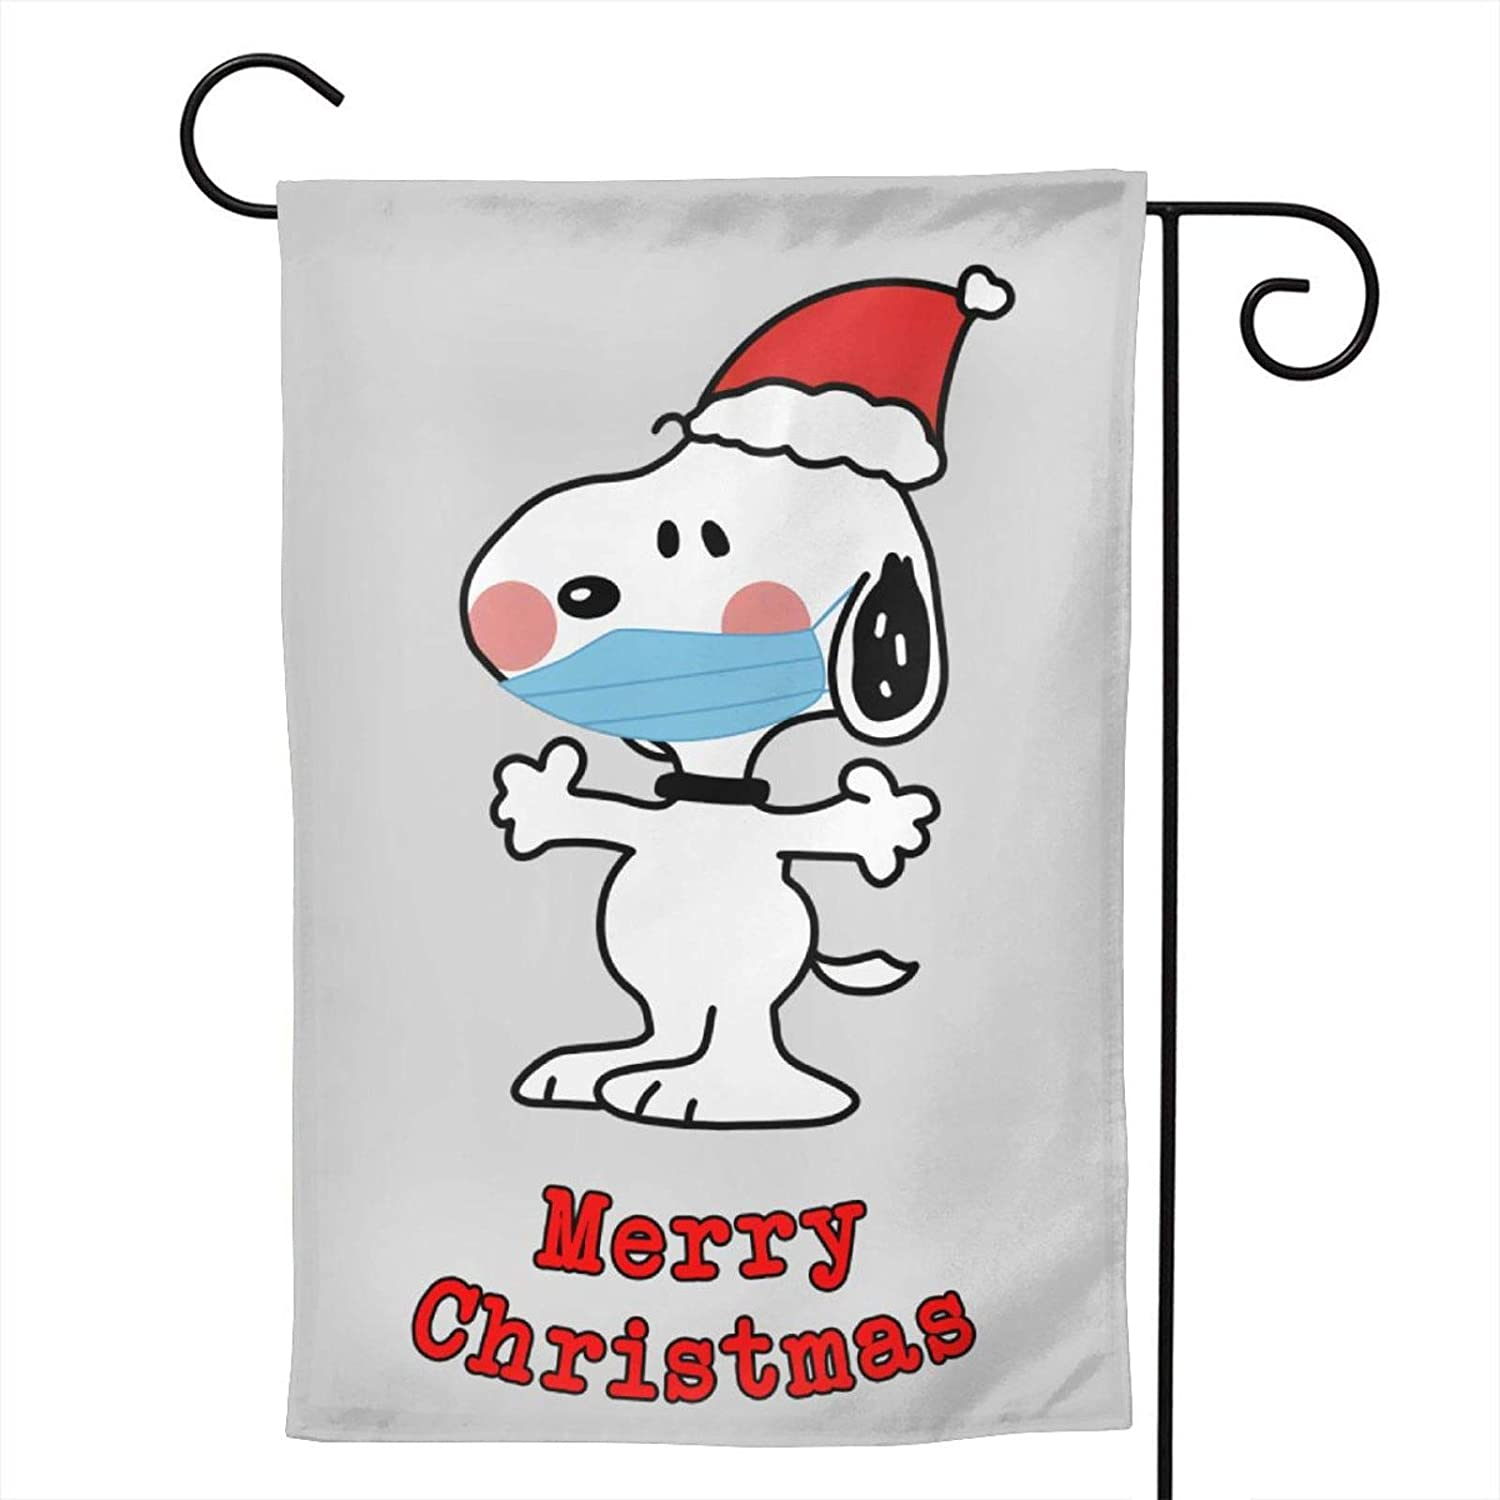 POLKJIH Snoopy Garden Flag Double-Sided Printing Not Easy to Fade for Thanksgiving Christmas Outdoor Decor 12.5